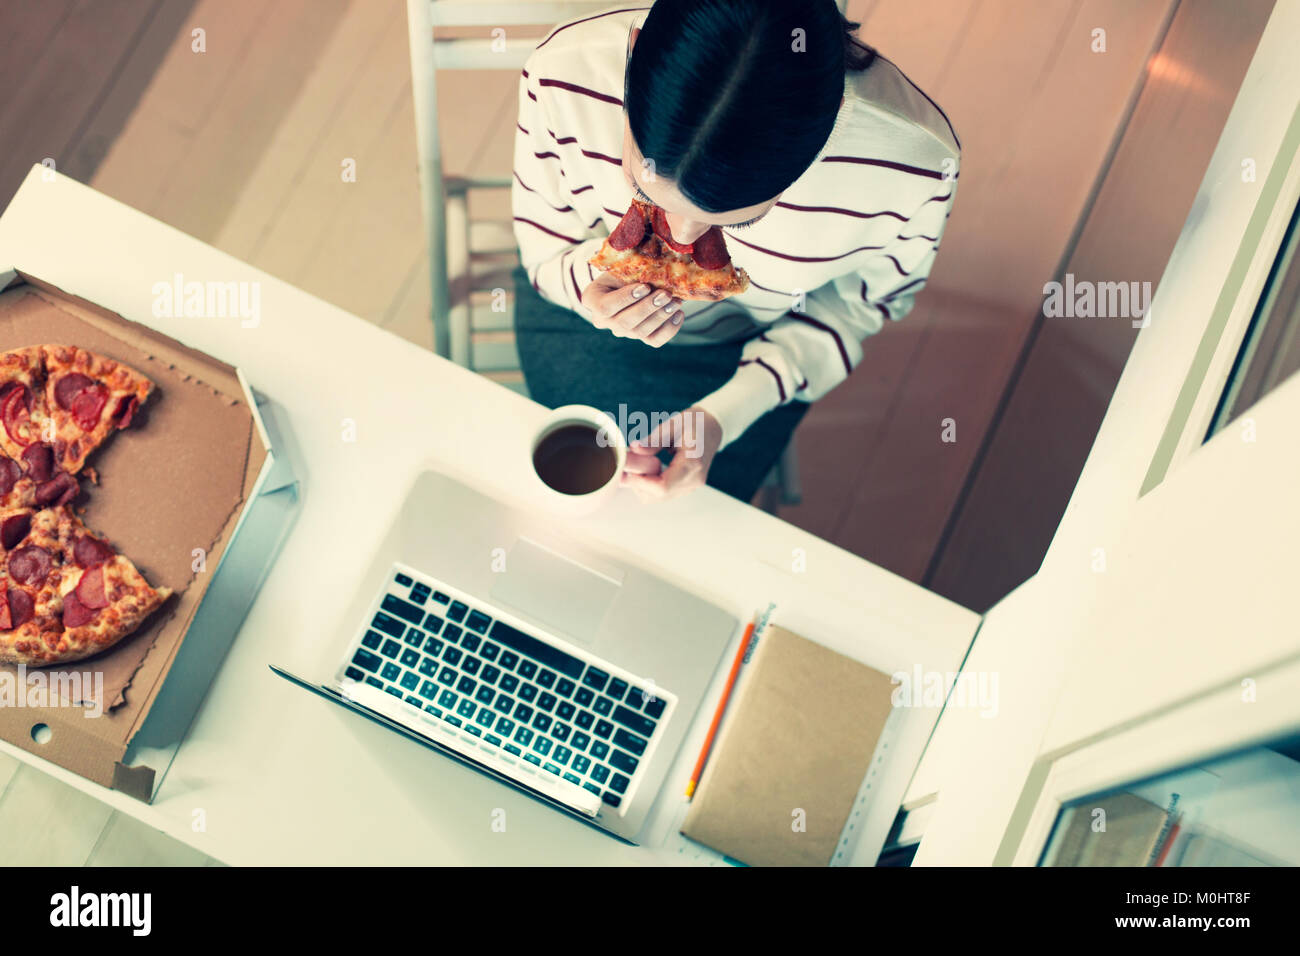 Top view of dark-haired woman eating pizza at workplace - Stock Image